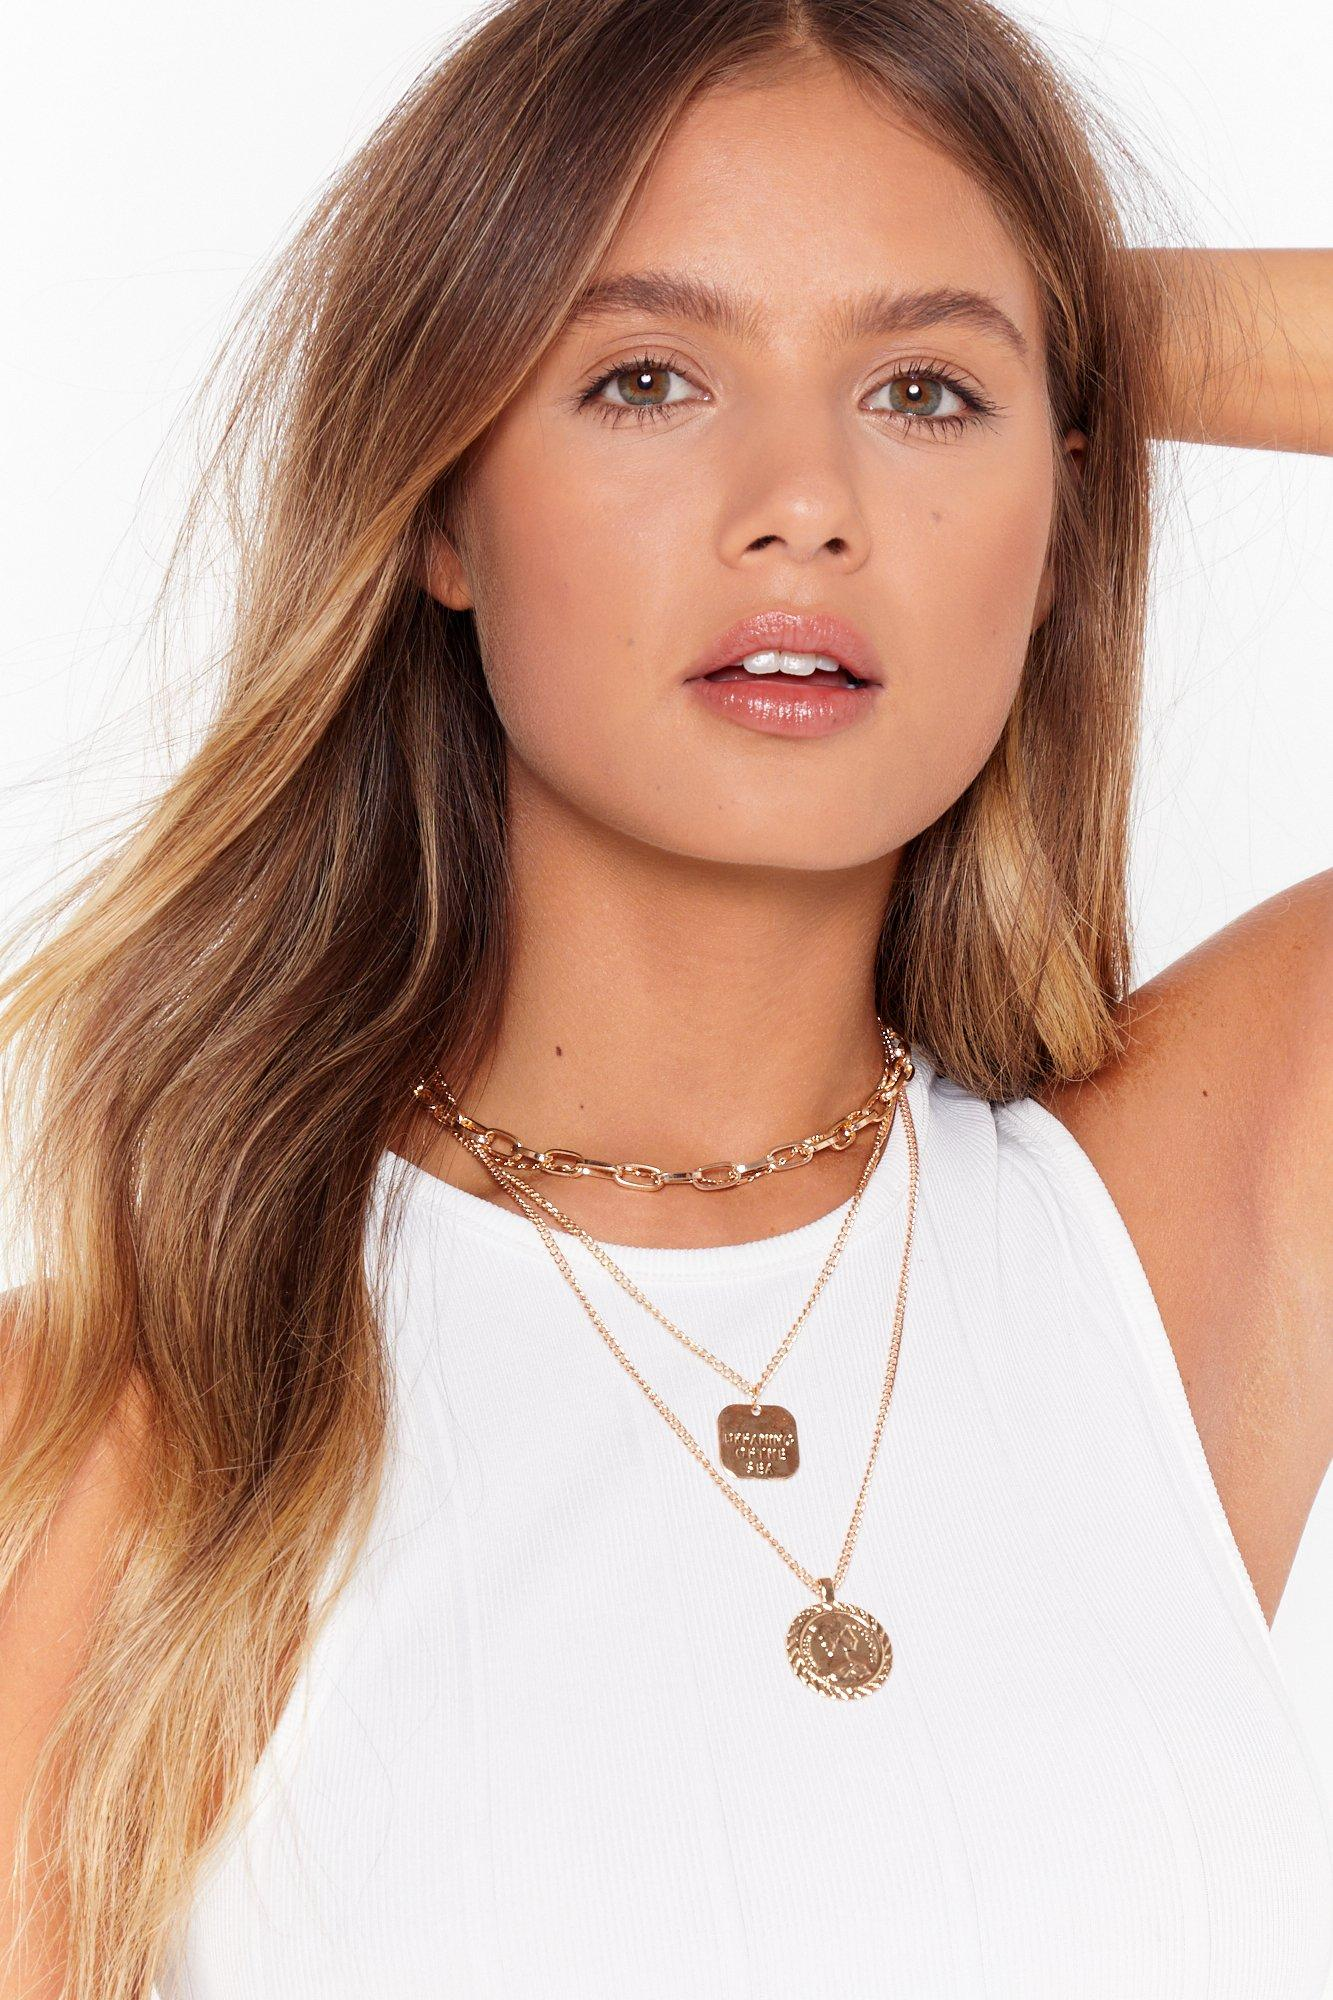 Image of Dreaming of the Sea Layered Chain Necklace